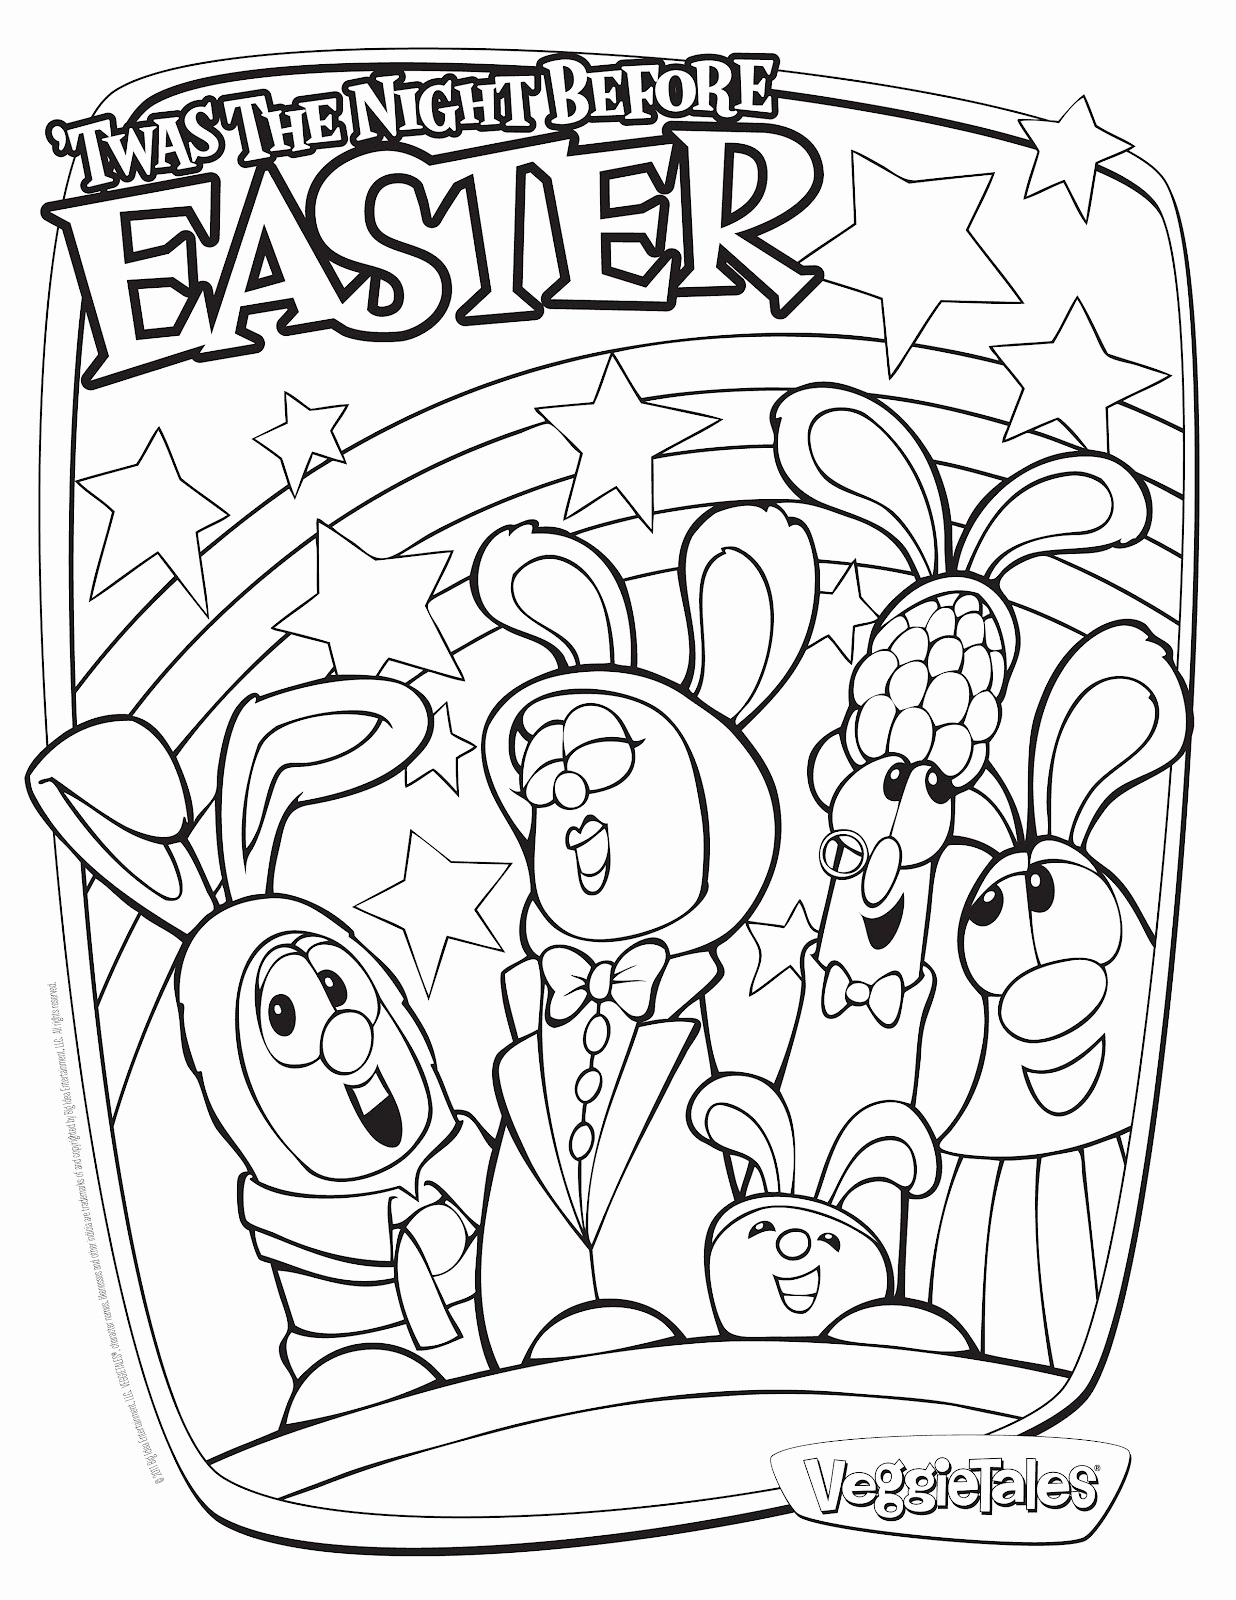 sunday school coloring pages easter Collection-Kids Coloring Pages for Hebrews 11 Inspirational Free Sunday School Coloring Pages New New New Od 17-t